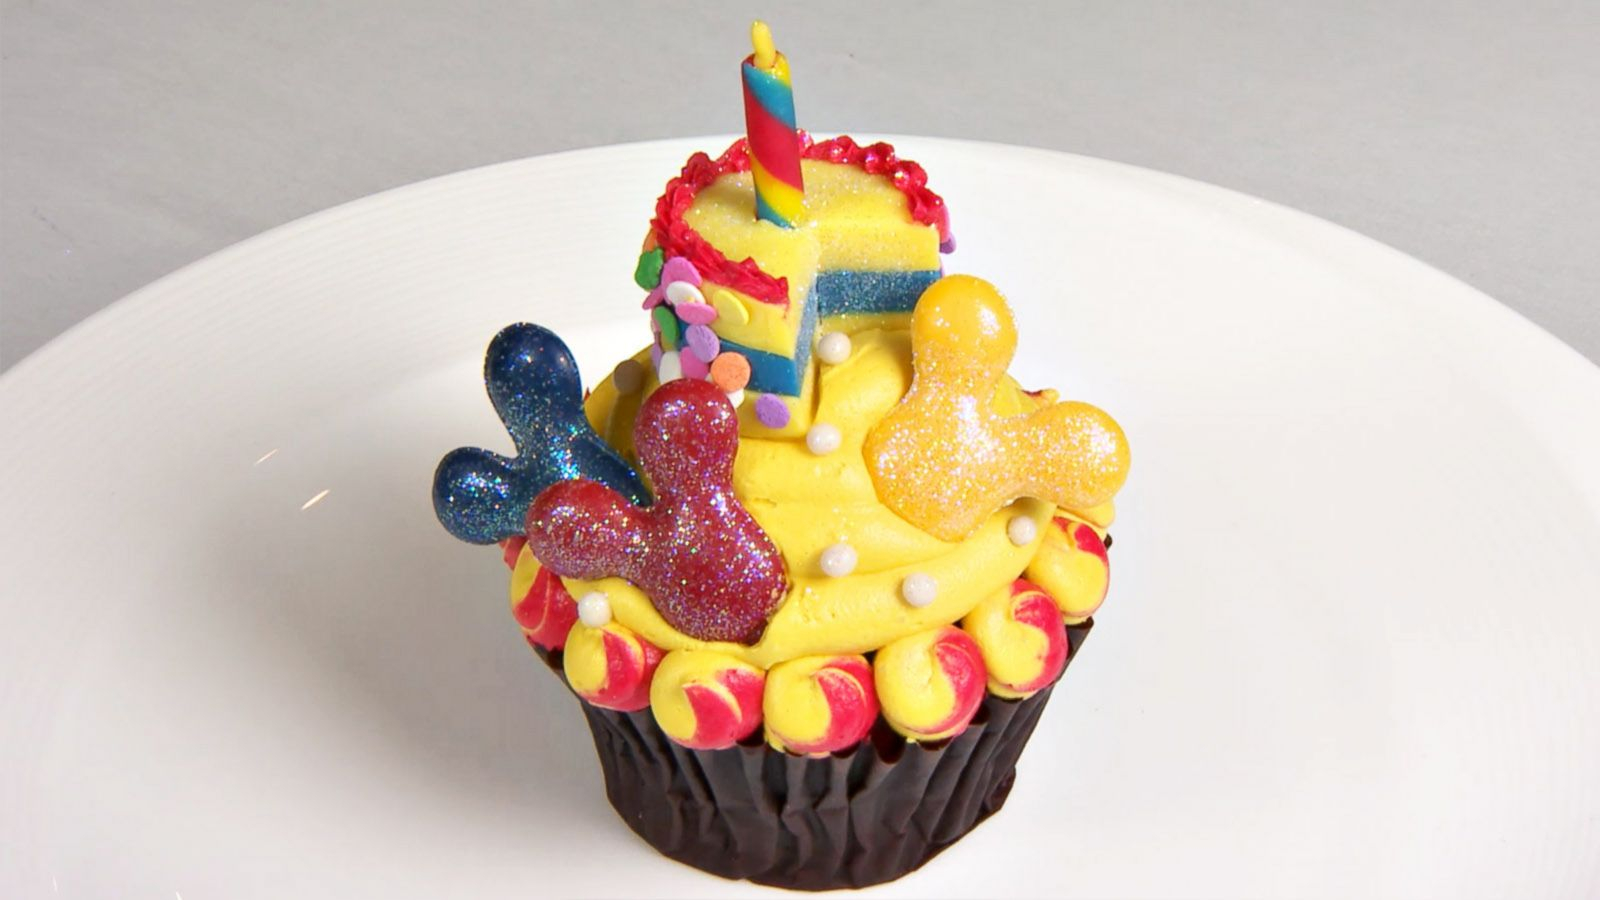 Mickey Mouse Birthday Cakes Mickeys 90th Birthday Cupcake Will Be Gone Before You Know It Abc